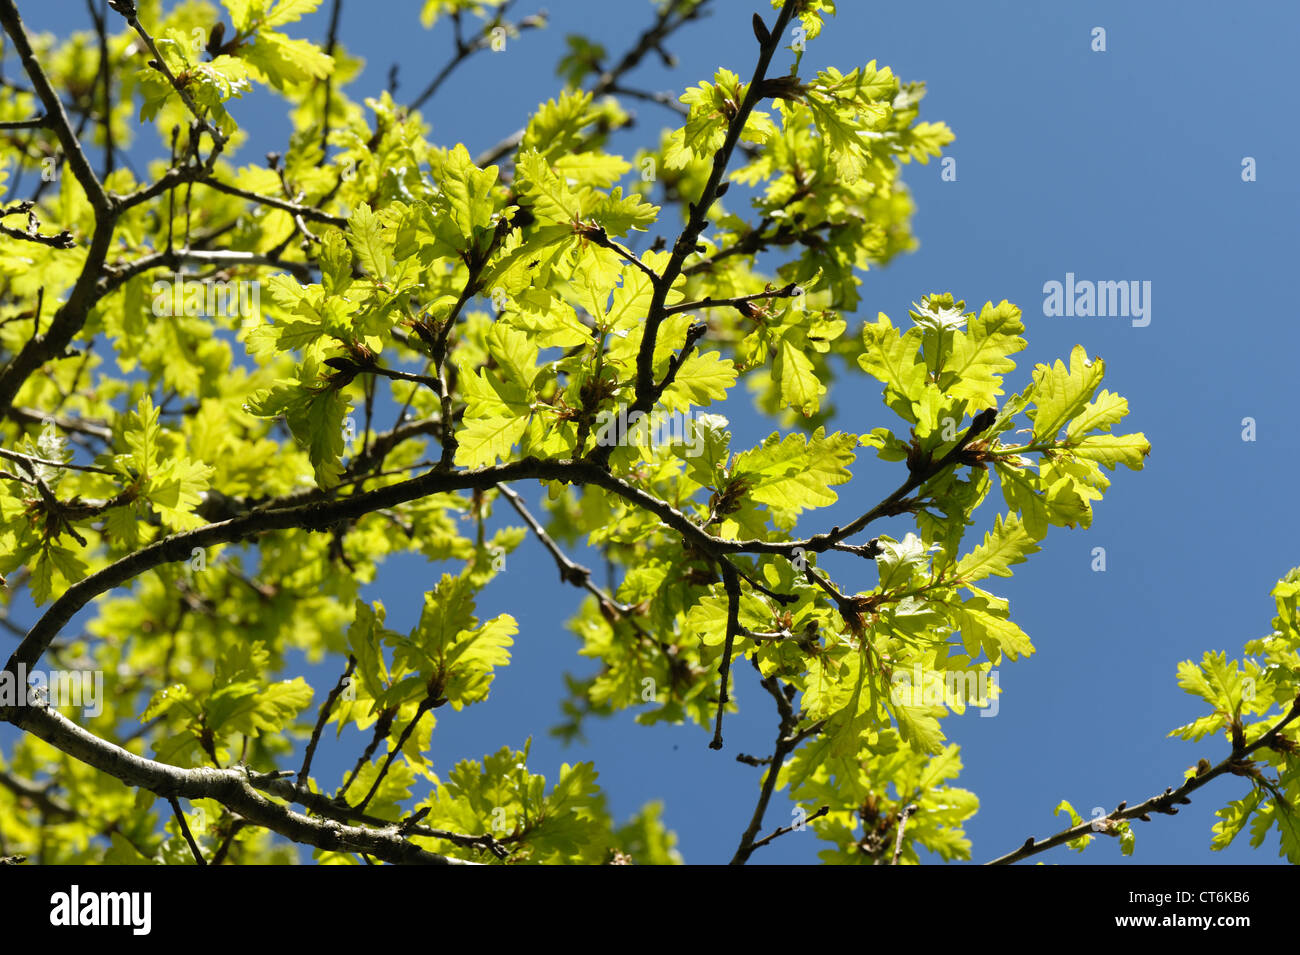 Young oak tree (Quercus robur) foliage backlit against against a blue spring sky Stock Photo